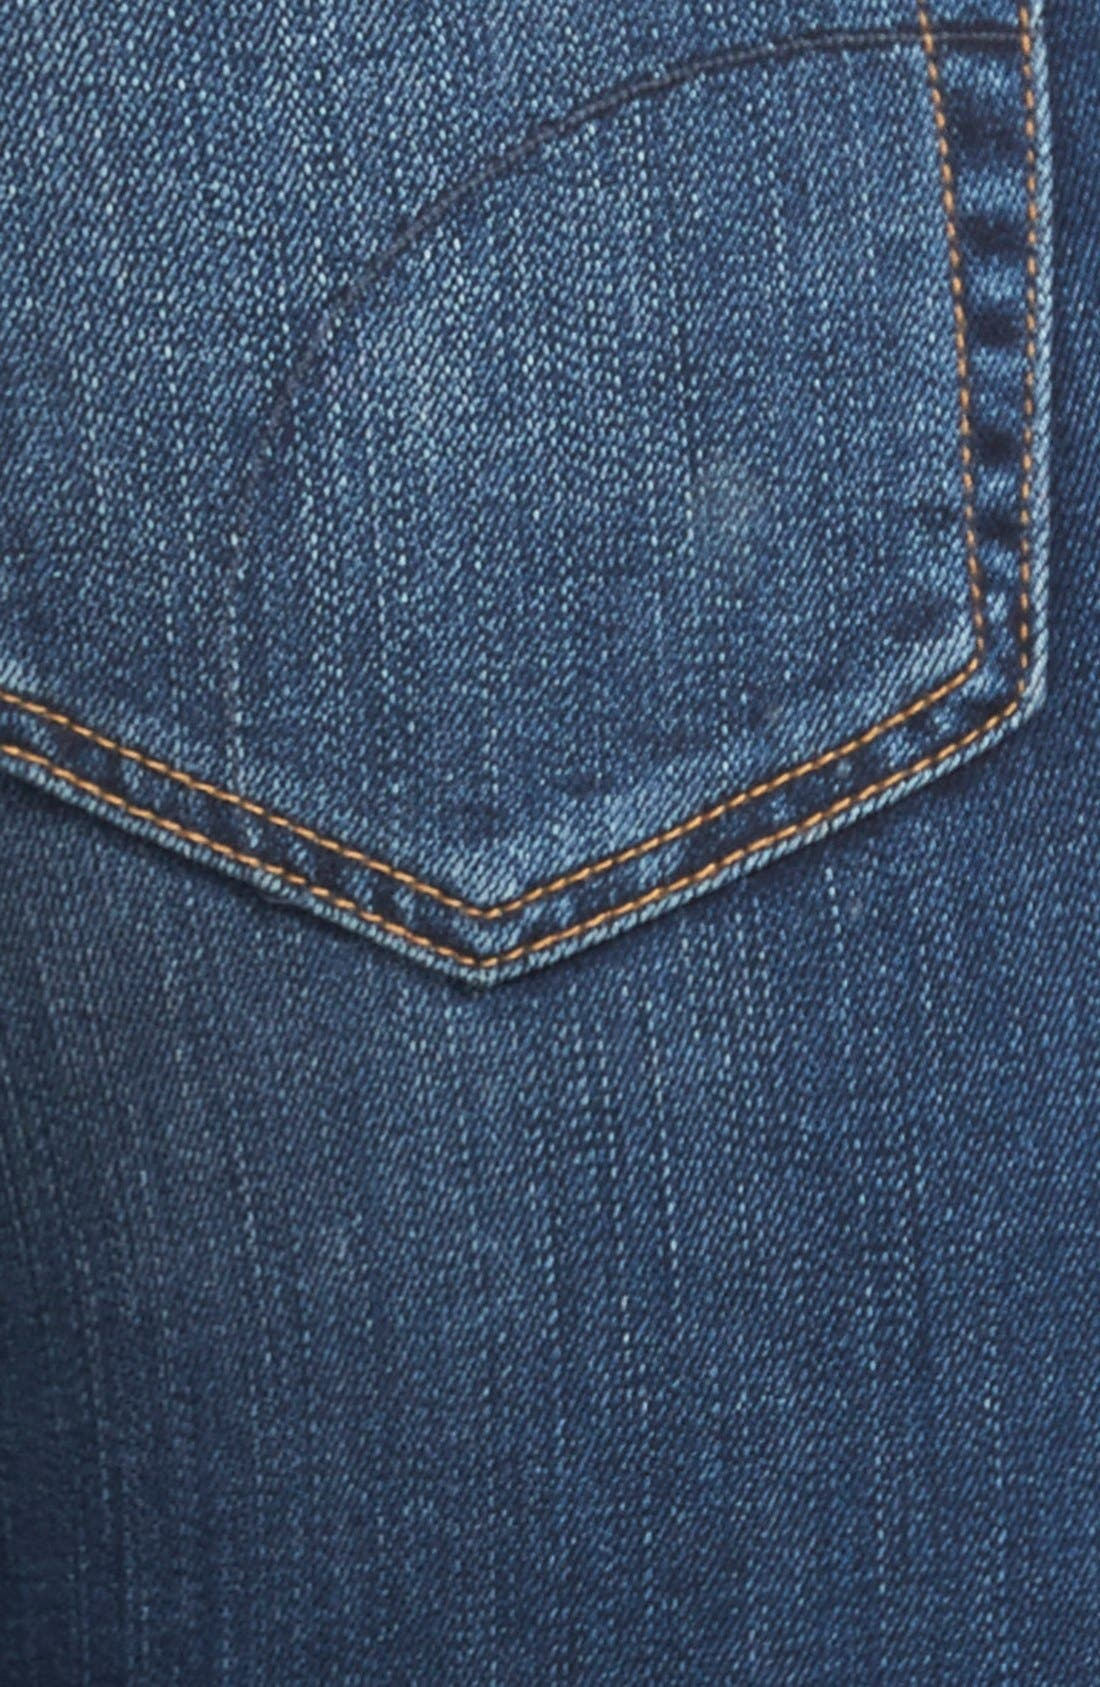 'Flawless - Icon' Flare Jeans,                             Alternate thumbnail 4, color,                             Camilla